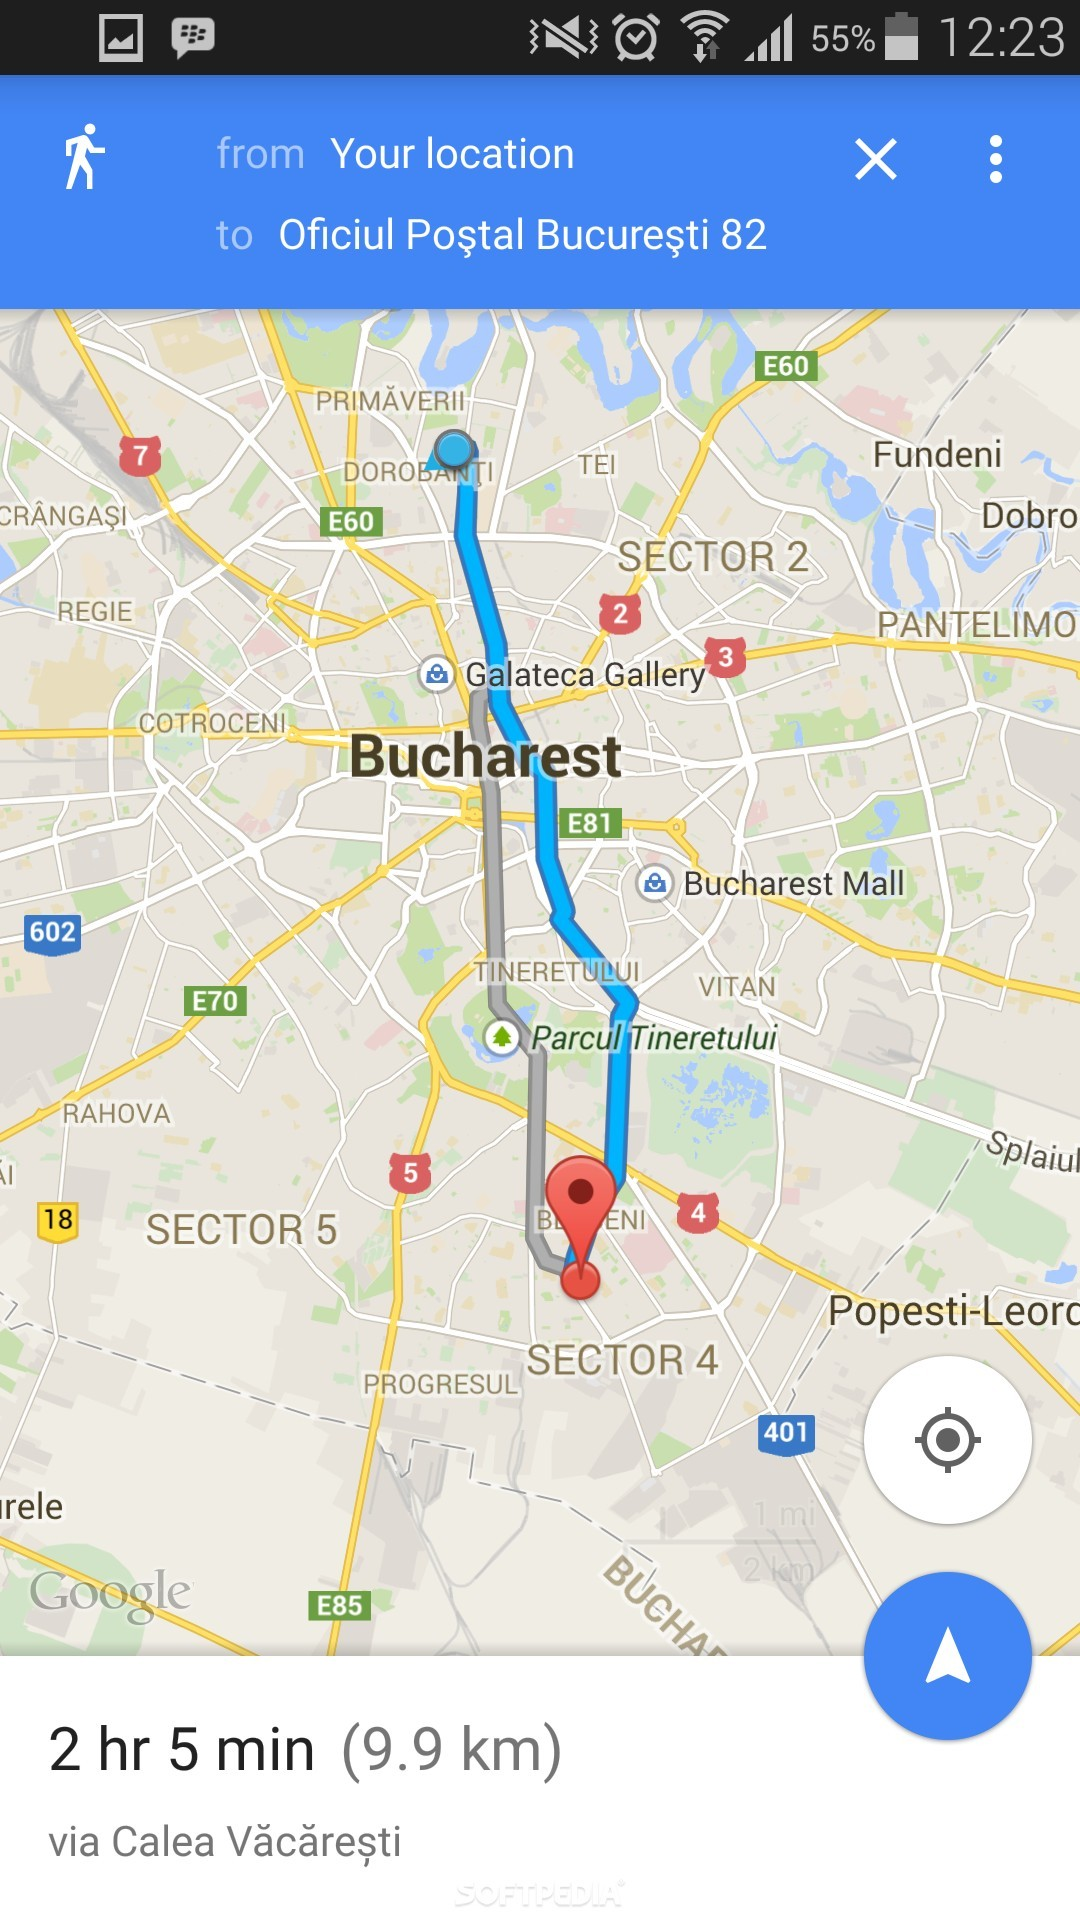 Google Rolls Out Maps 9 0 For Android With Material Design Ui